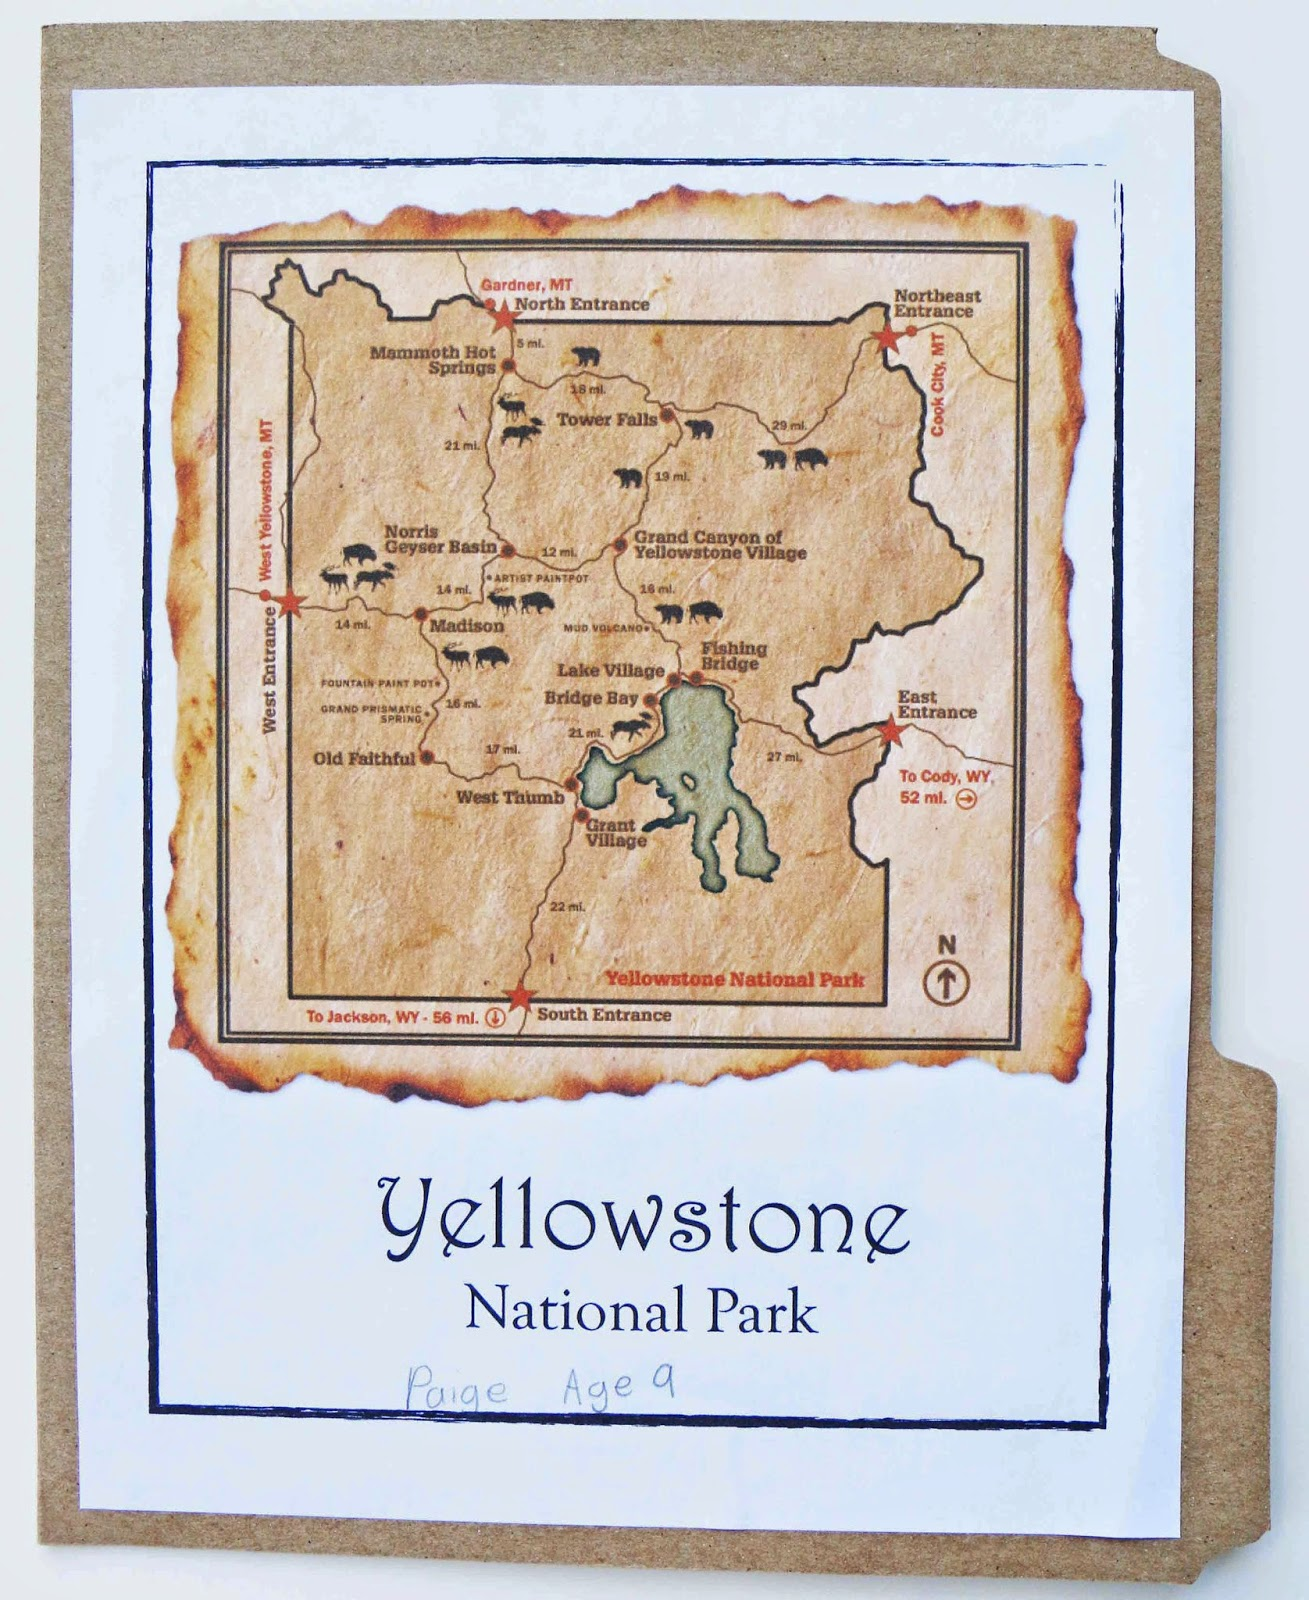 Carrot Top X 3 Yellowstone National Park Lapbook Free